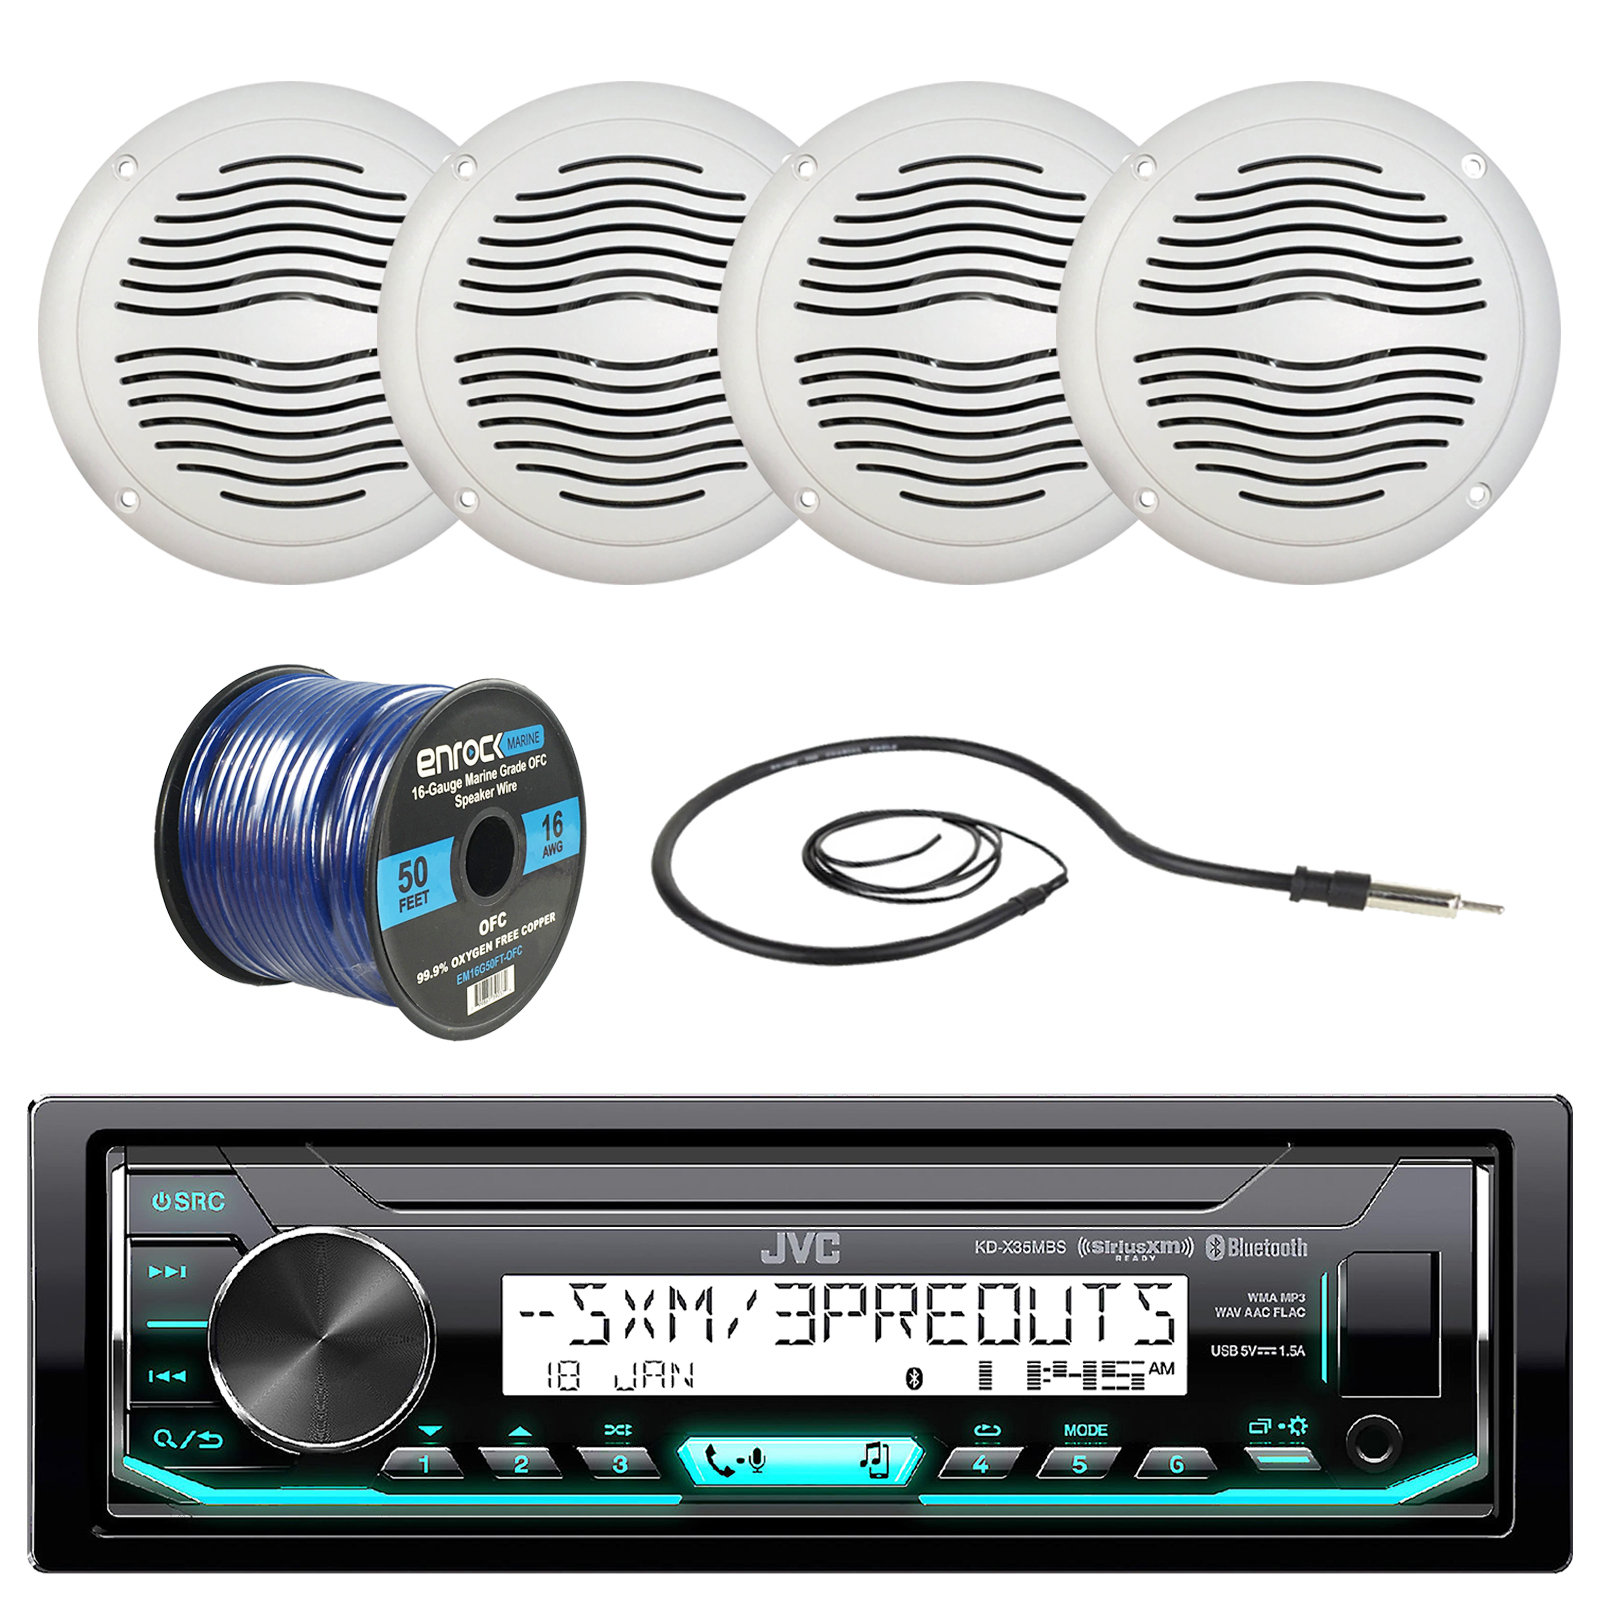 "JVC KD-X35MBS Marine Boat Yacht Radio Stereo MP3 Player Receiver Bundle Combo With 4x Magnadyne WR40W 5"" Inch White Waterproof Outdoor Speakers + Enrock 22"" Radio Antenna + 50 Foot 16g Speaker Wire"